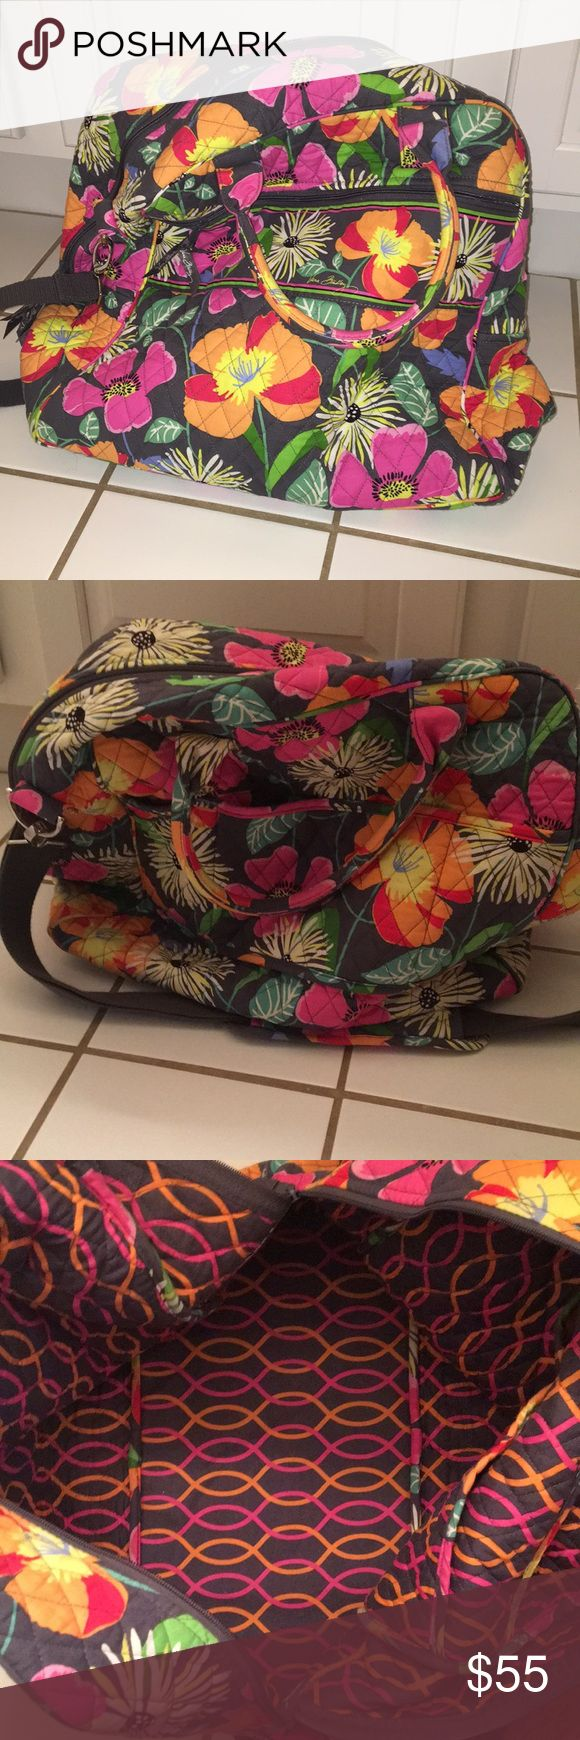 Vera Bradley Travel Bag EUC. NO FLAWS! gently used only a few times! excellent used condition! Vera Bradley Bags